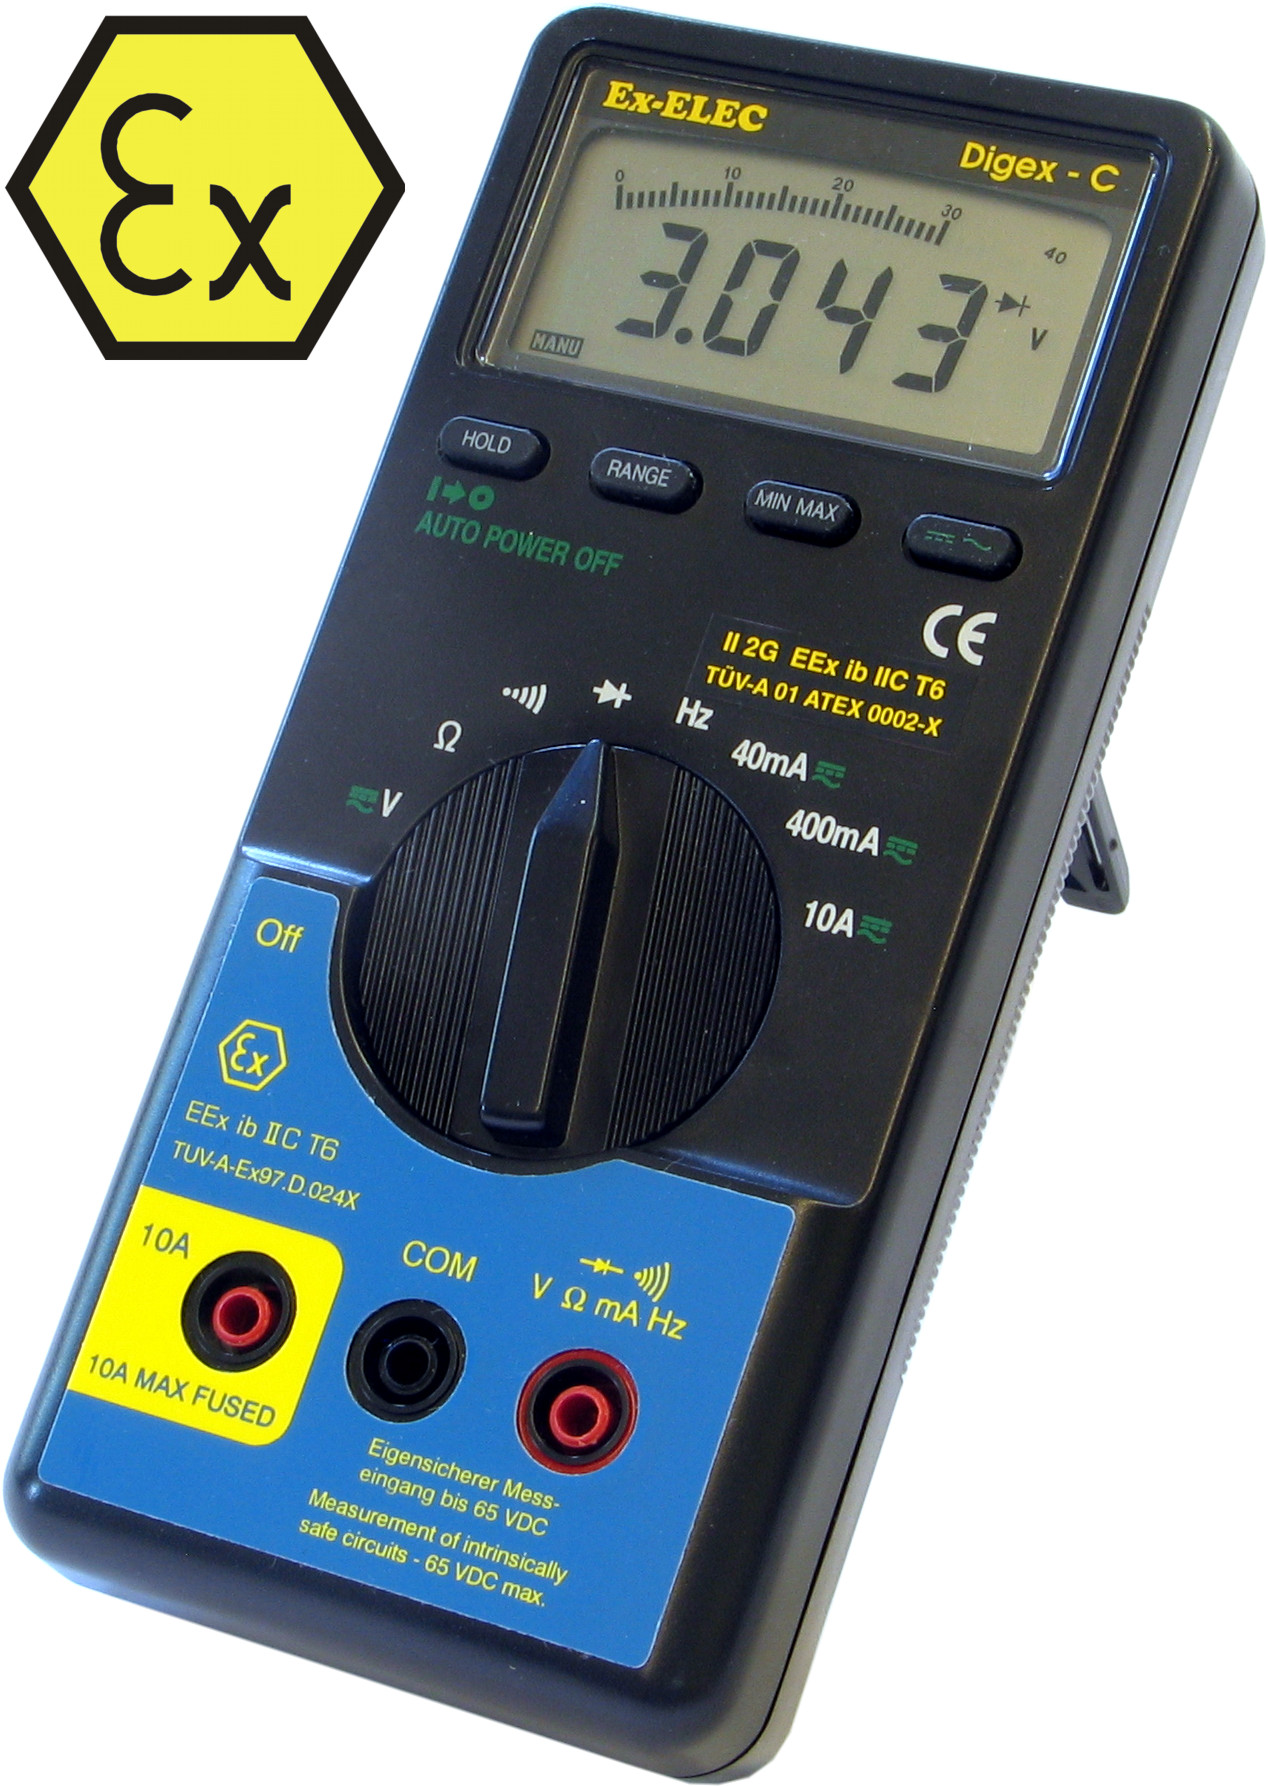 DIGEX-C EEx ib – Digitalmultimeter